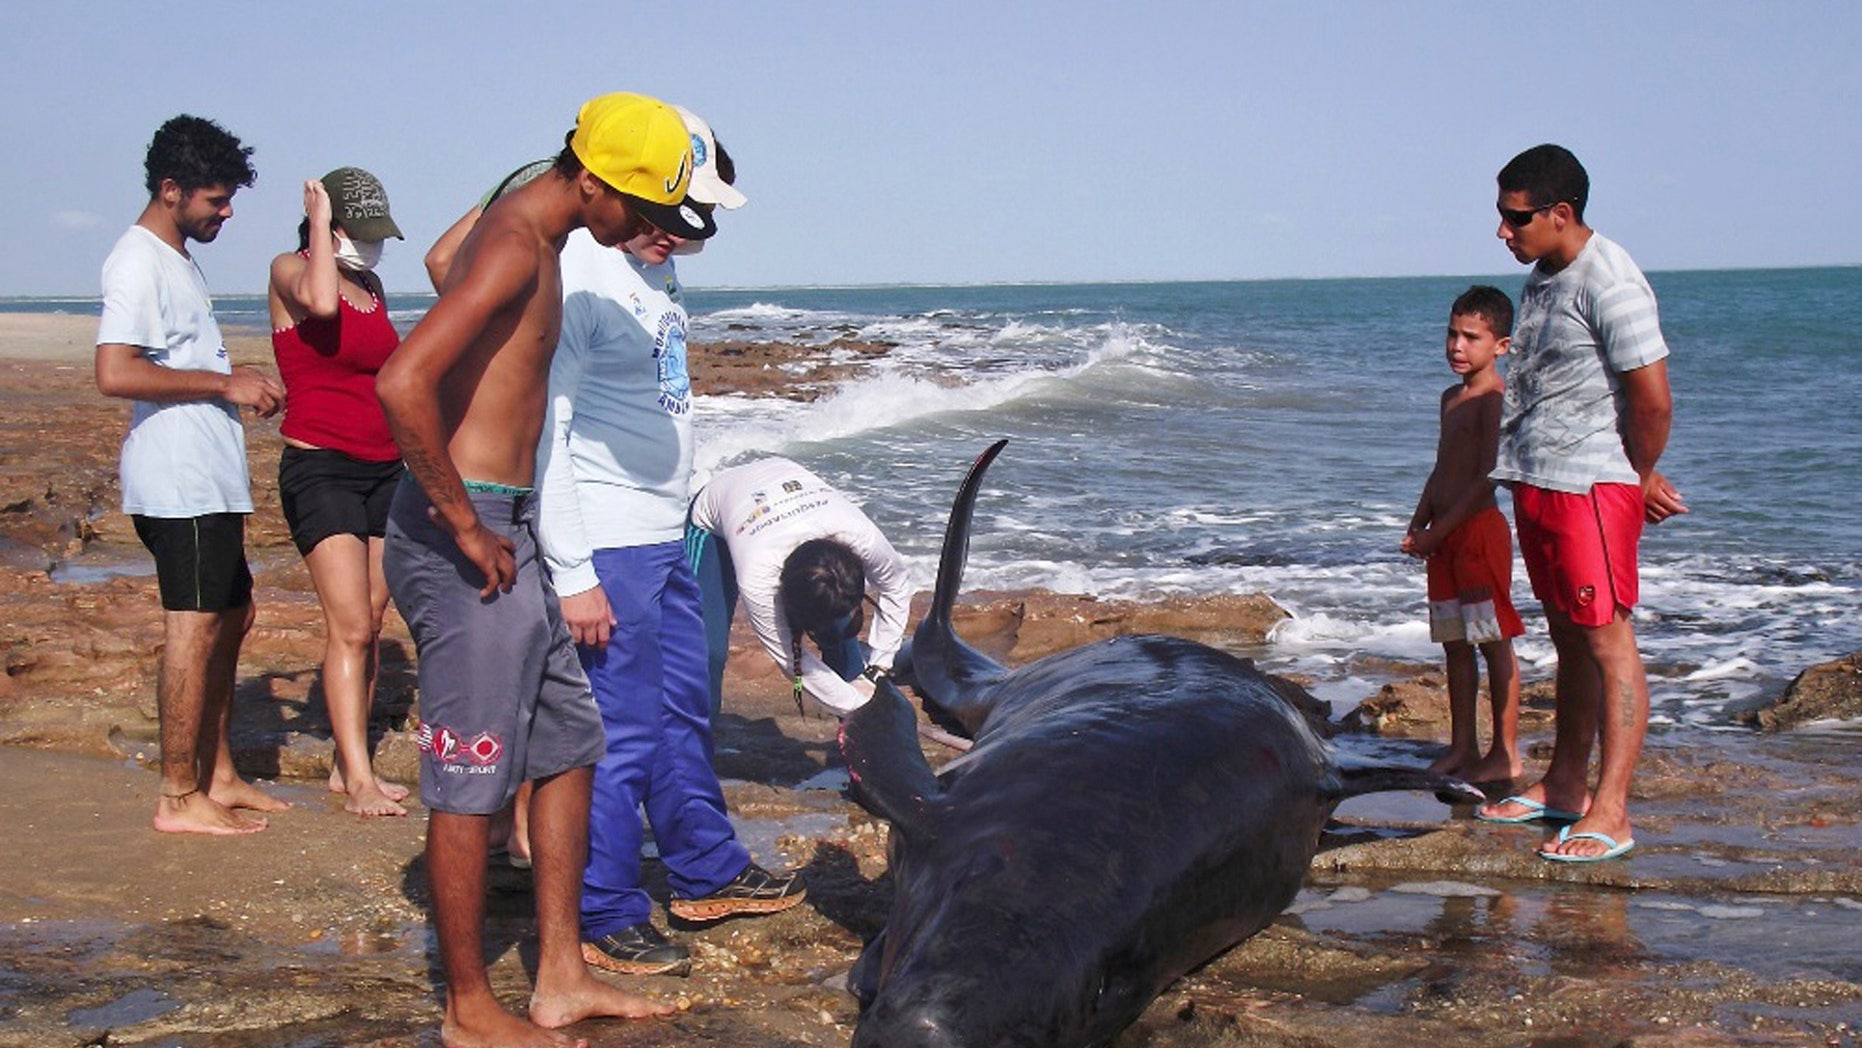 People look on as biologists inspect a dolphin on Upanema beach in the Areia Branca municipality of Rio Grande.